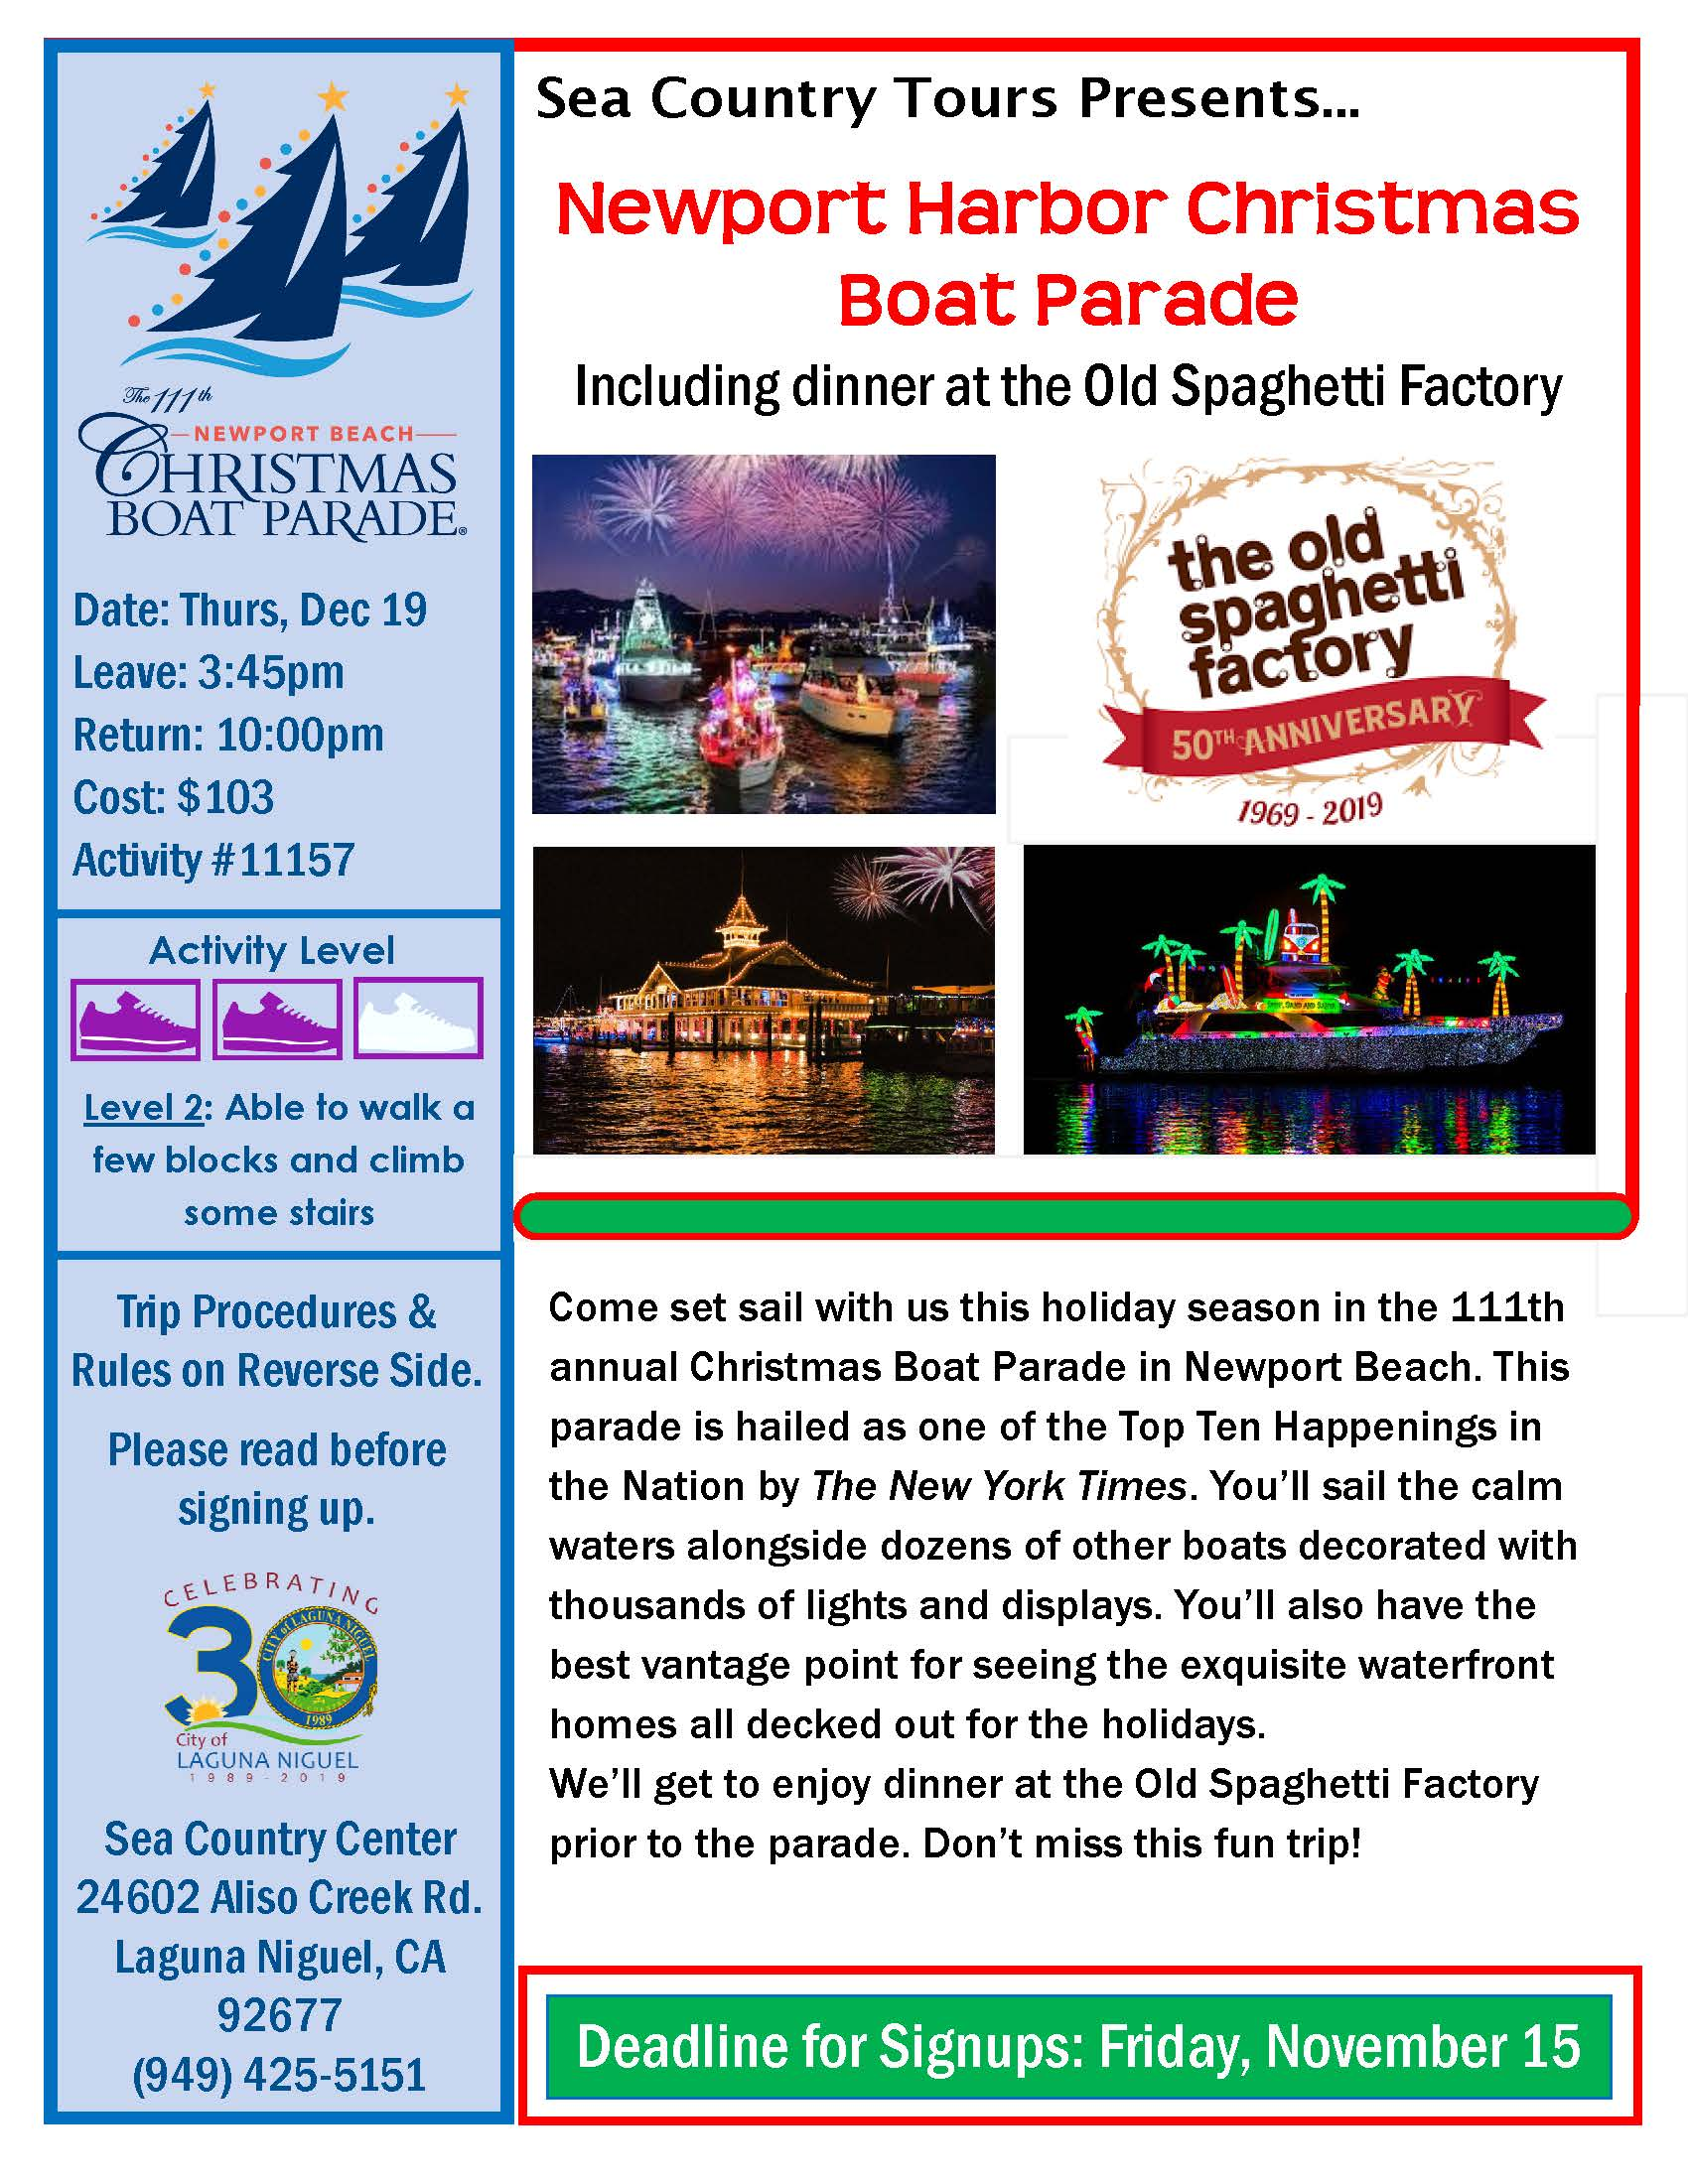 Newport Harbor Christmas Boat Parade December 2019 Flyer